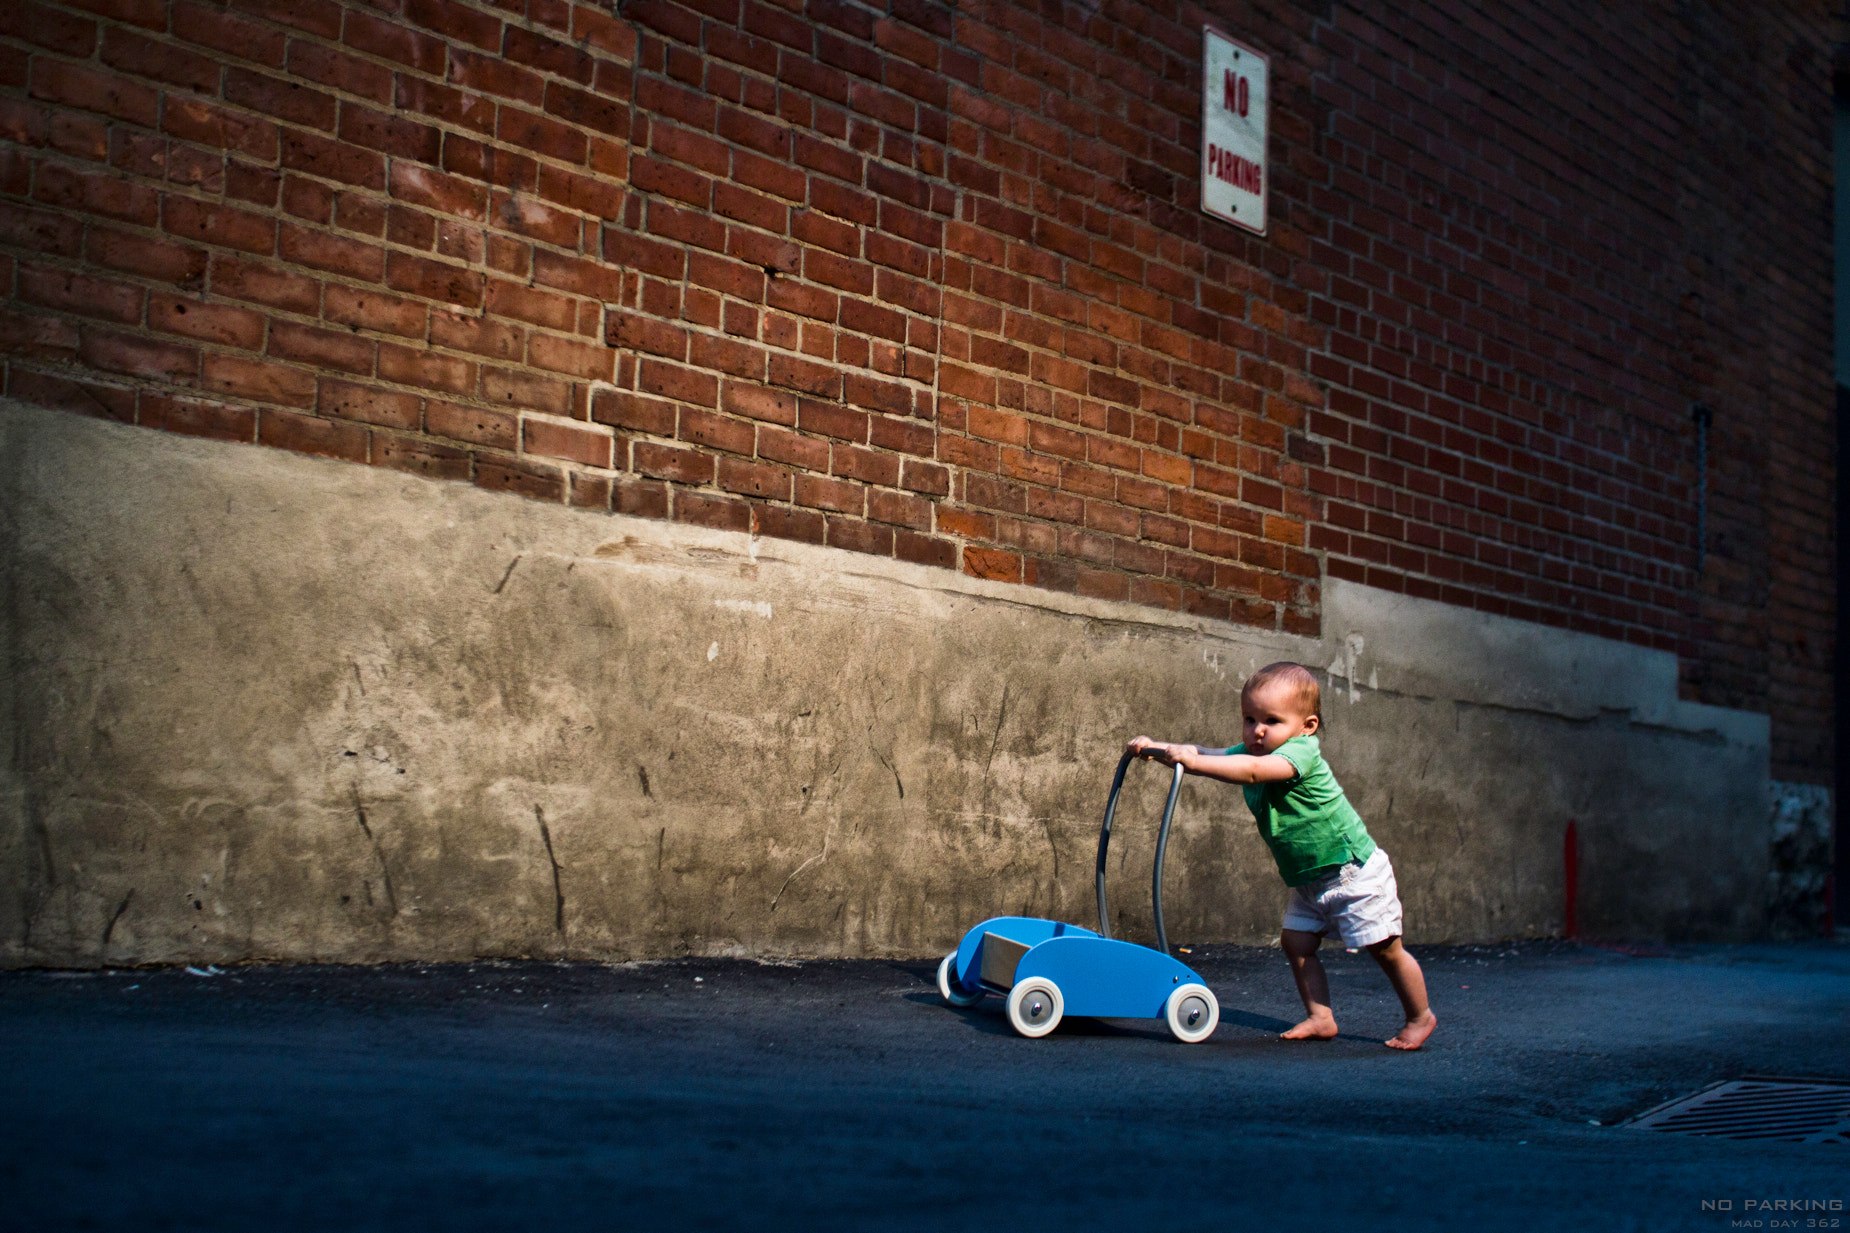 Photograph mad day 362 - no parking by kristopher chandroo on 500px